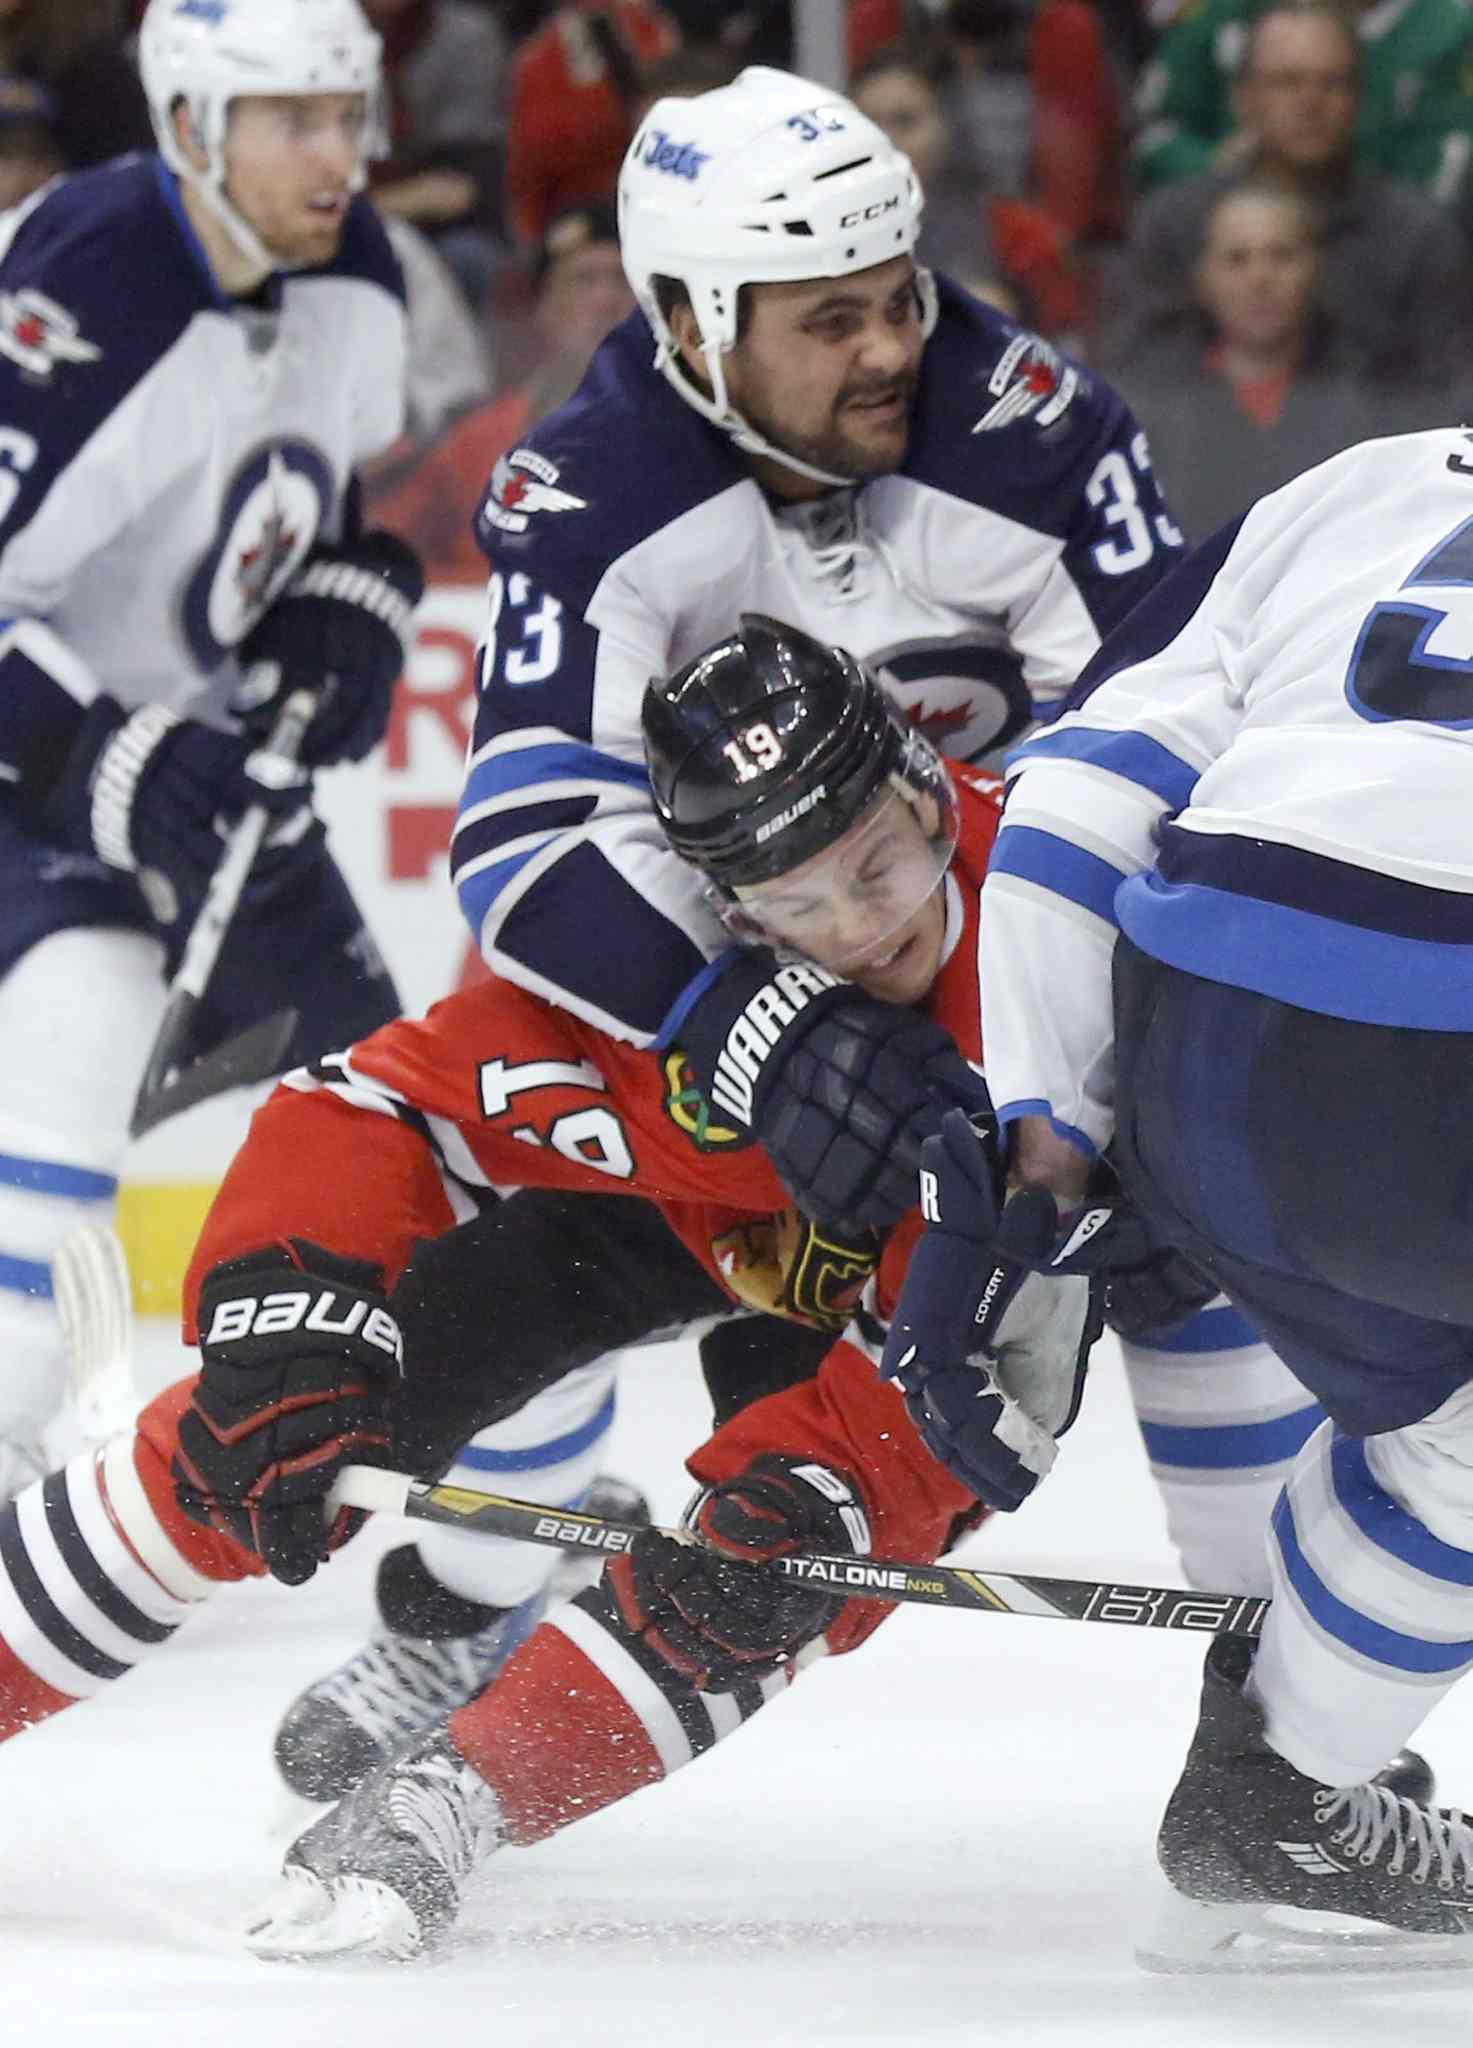 Jets forward Dustin Byfuglien subdues Blackhawks captain Jonathan Toews during the Jets' come-from-behind victory over the reigning Stanley Cup champs Sunday night in Chicago